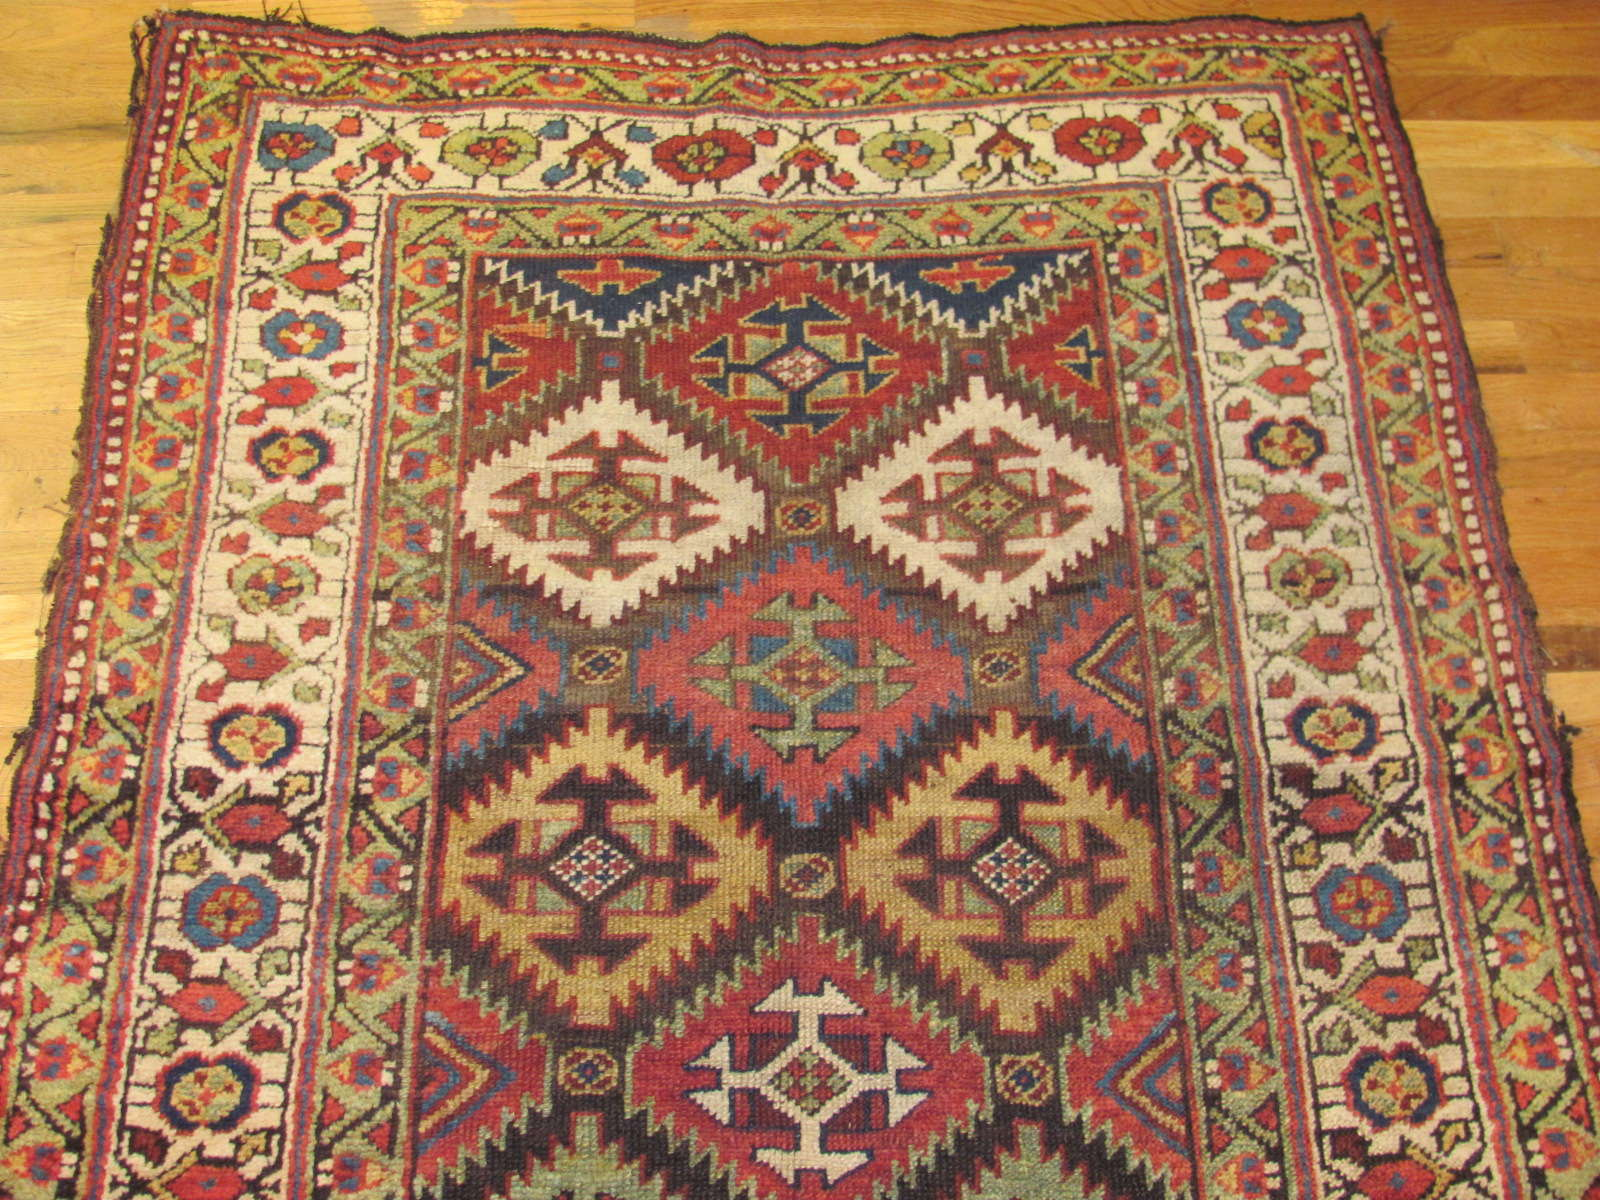 24543 antique persian kurdish rug 4,3x8,7 -1